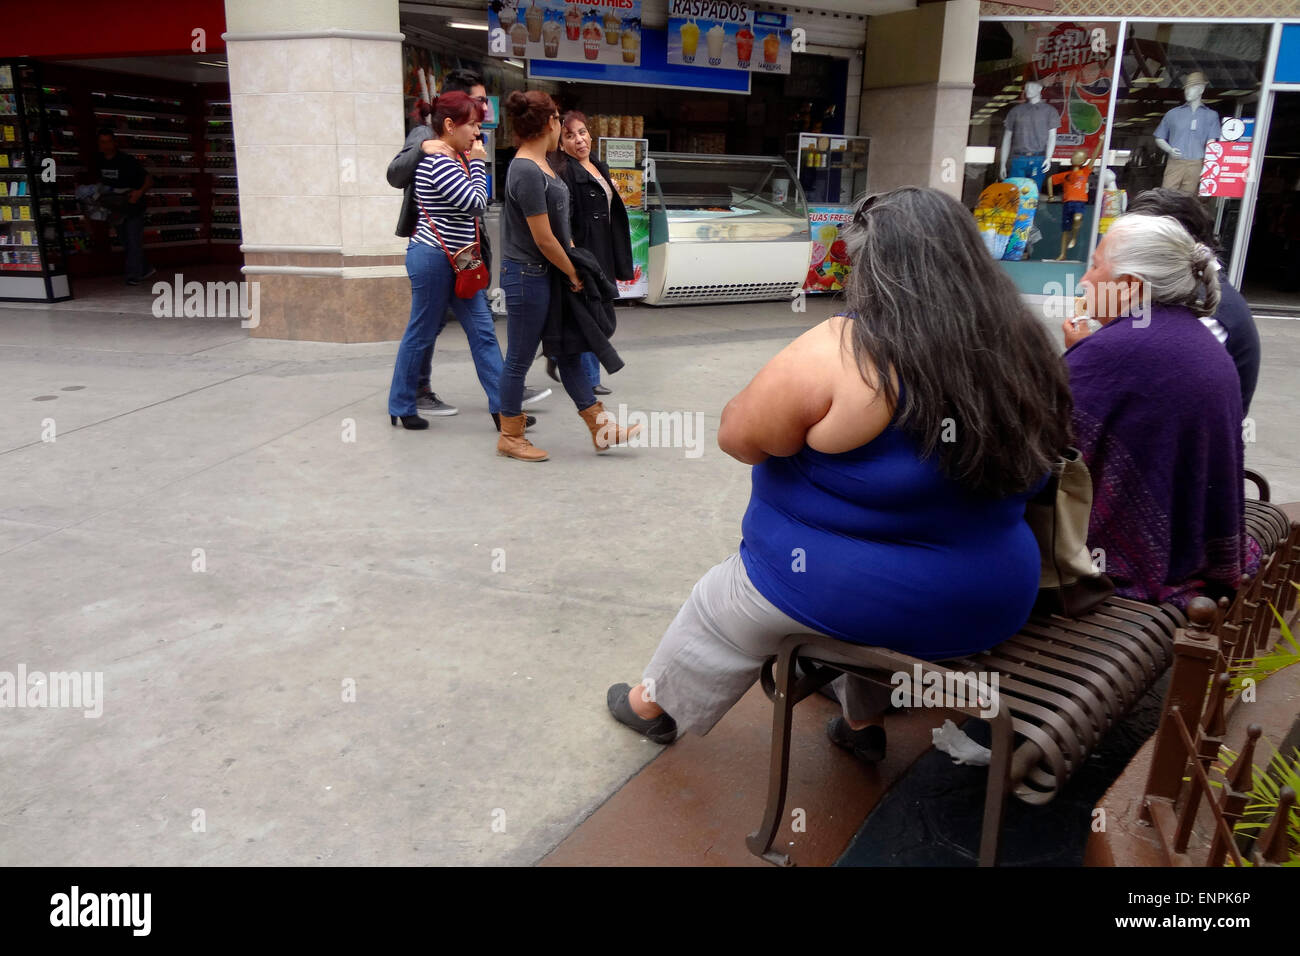 Tijuana. 6th May, 2015. Image taken on May 6, 2015 shows an overweight woman in a mall in Tijuana City, northeast Stock Photo